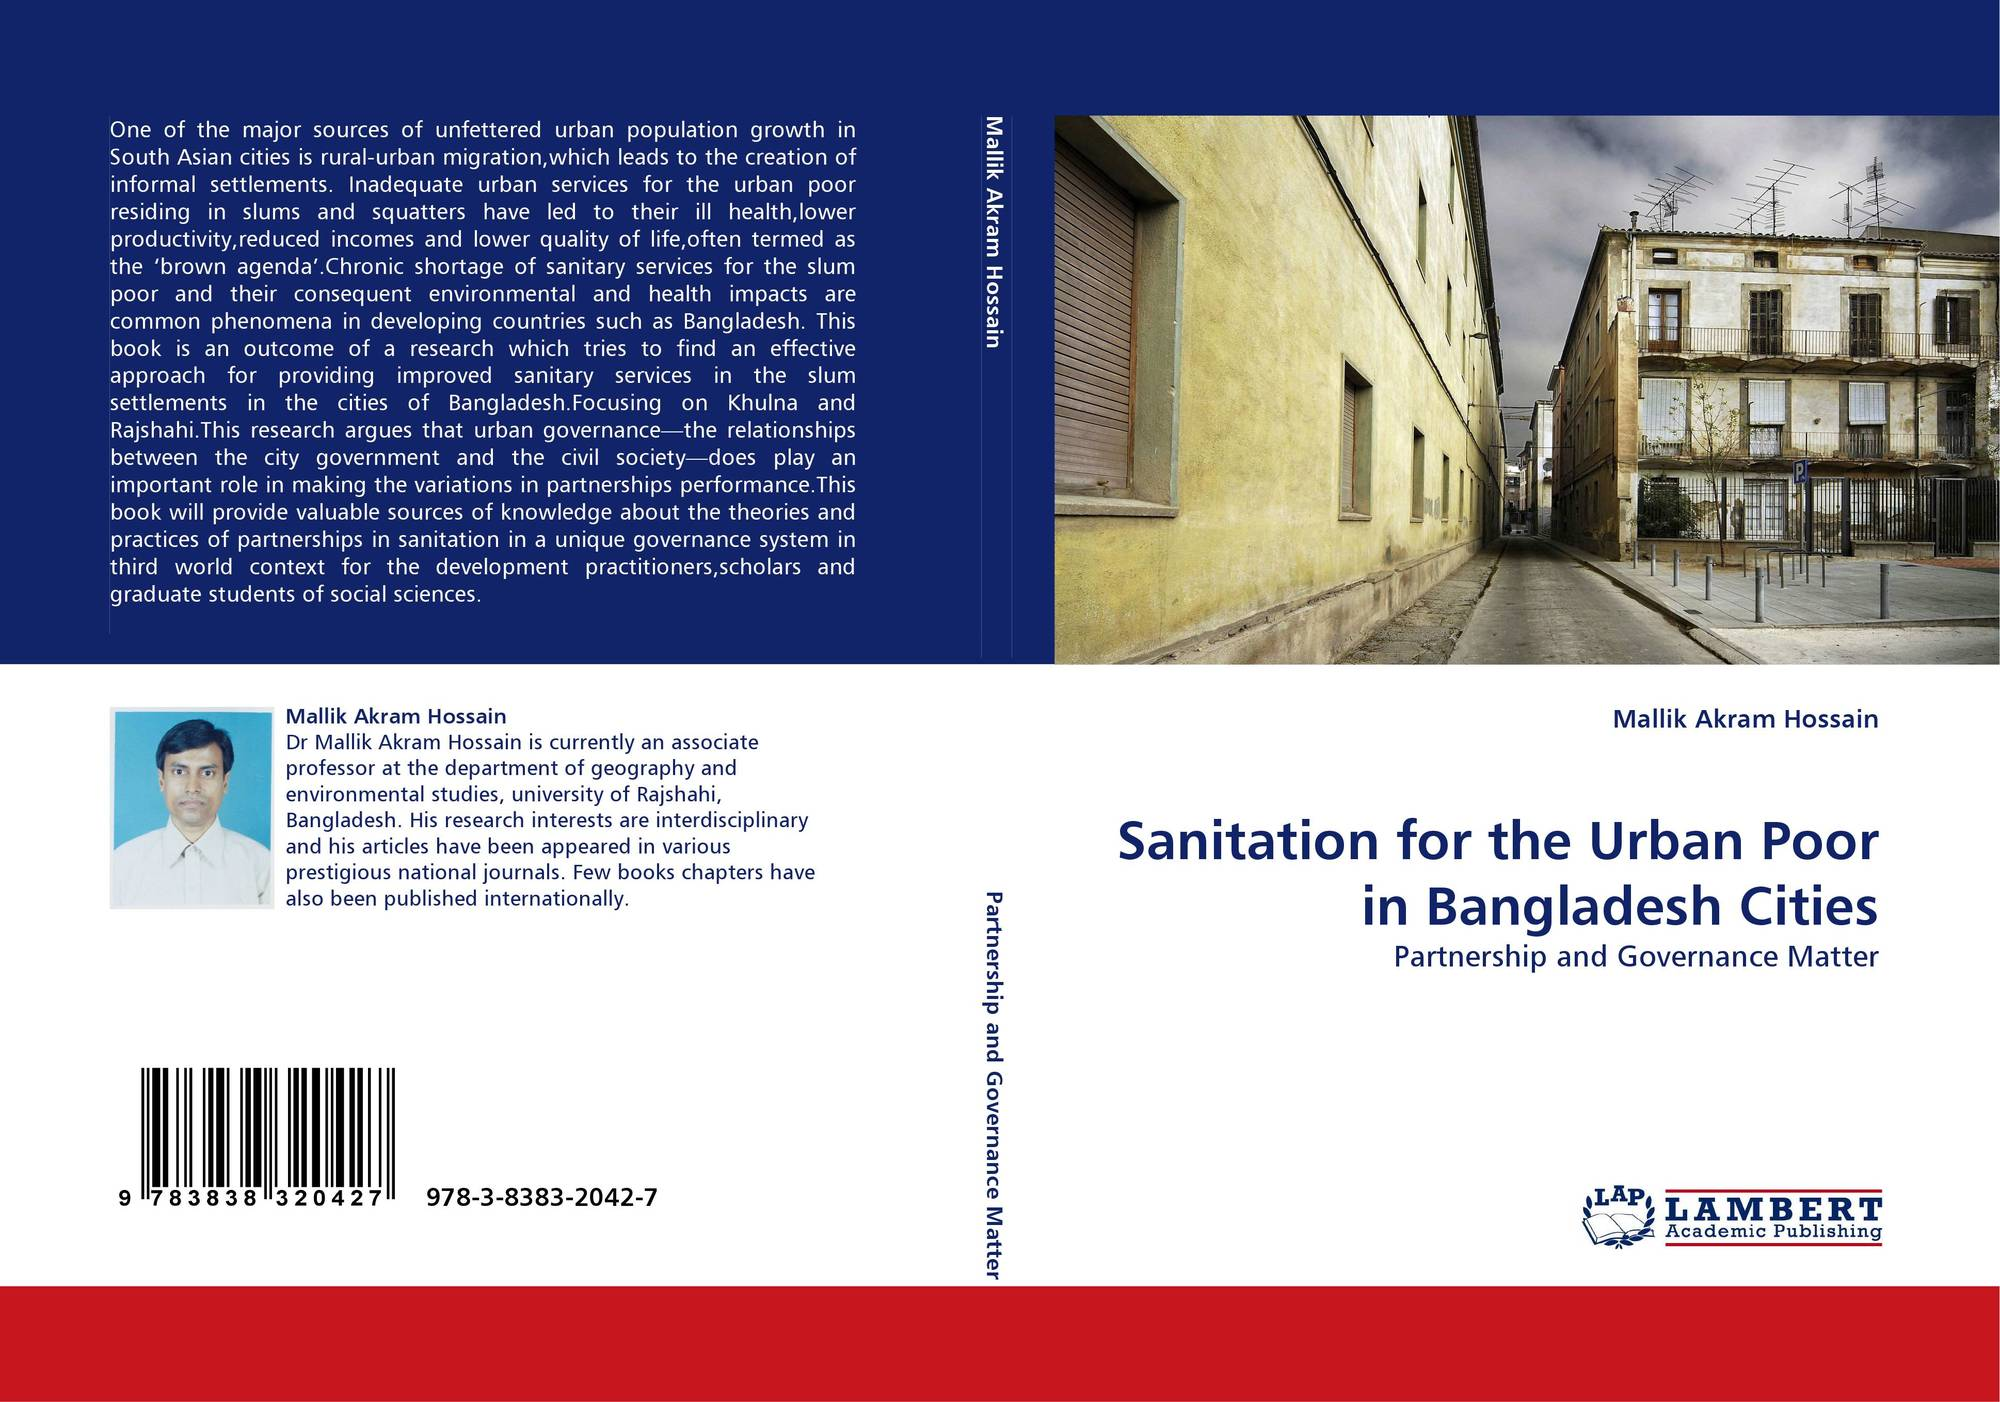 Sanitation for the Urban Poor in Bangladesh Cities, 978-3